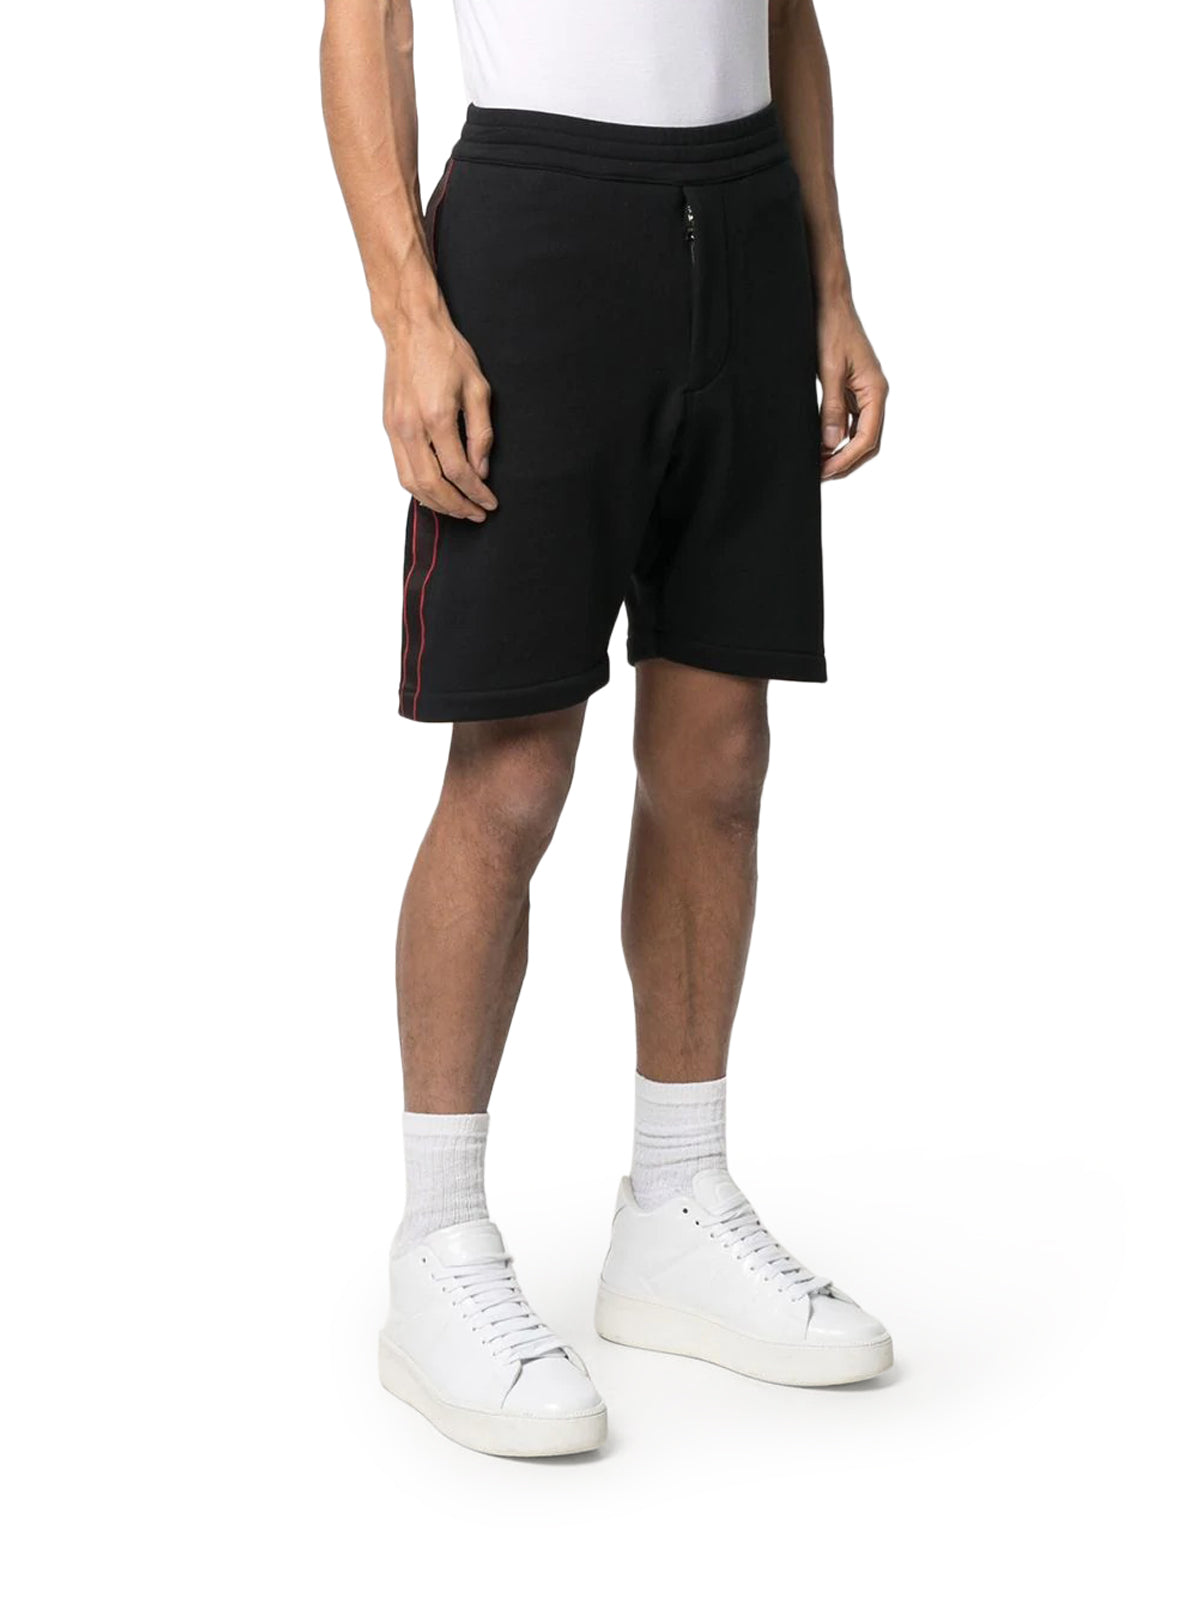 Black selvedge logo tape detail shorts